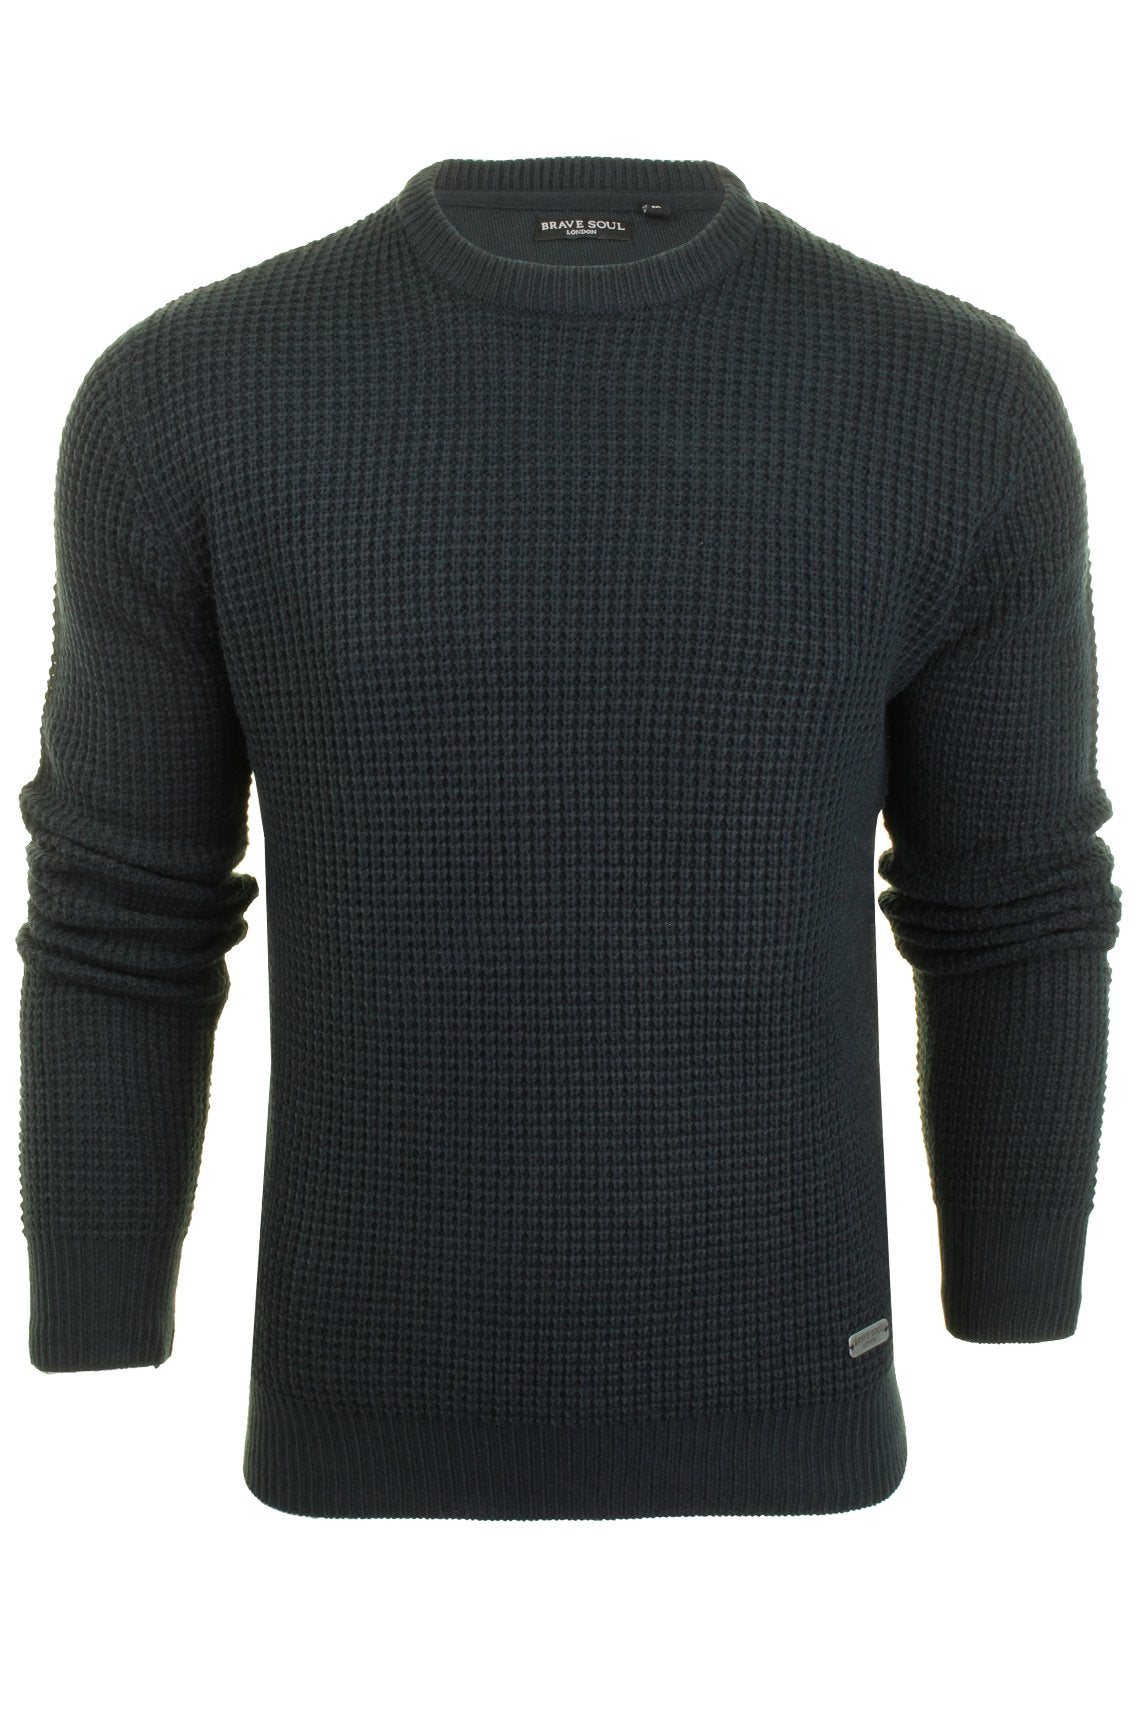 Mens Brave Soul Jumper 'Slovak' Crew Neck-Main Image